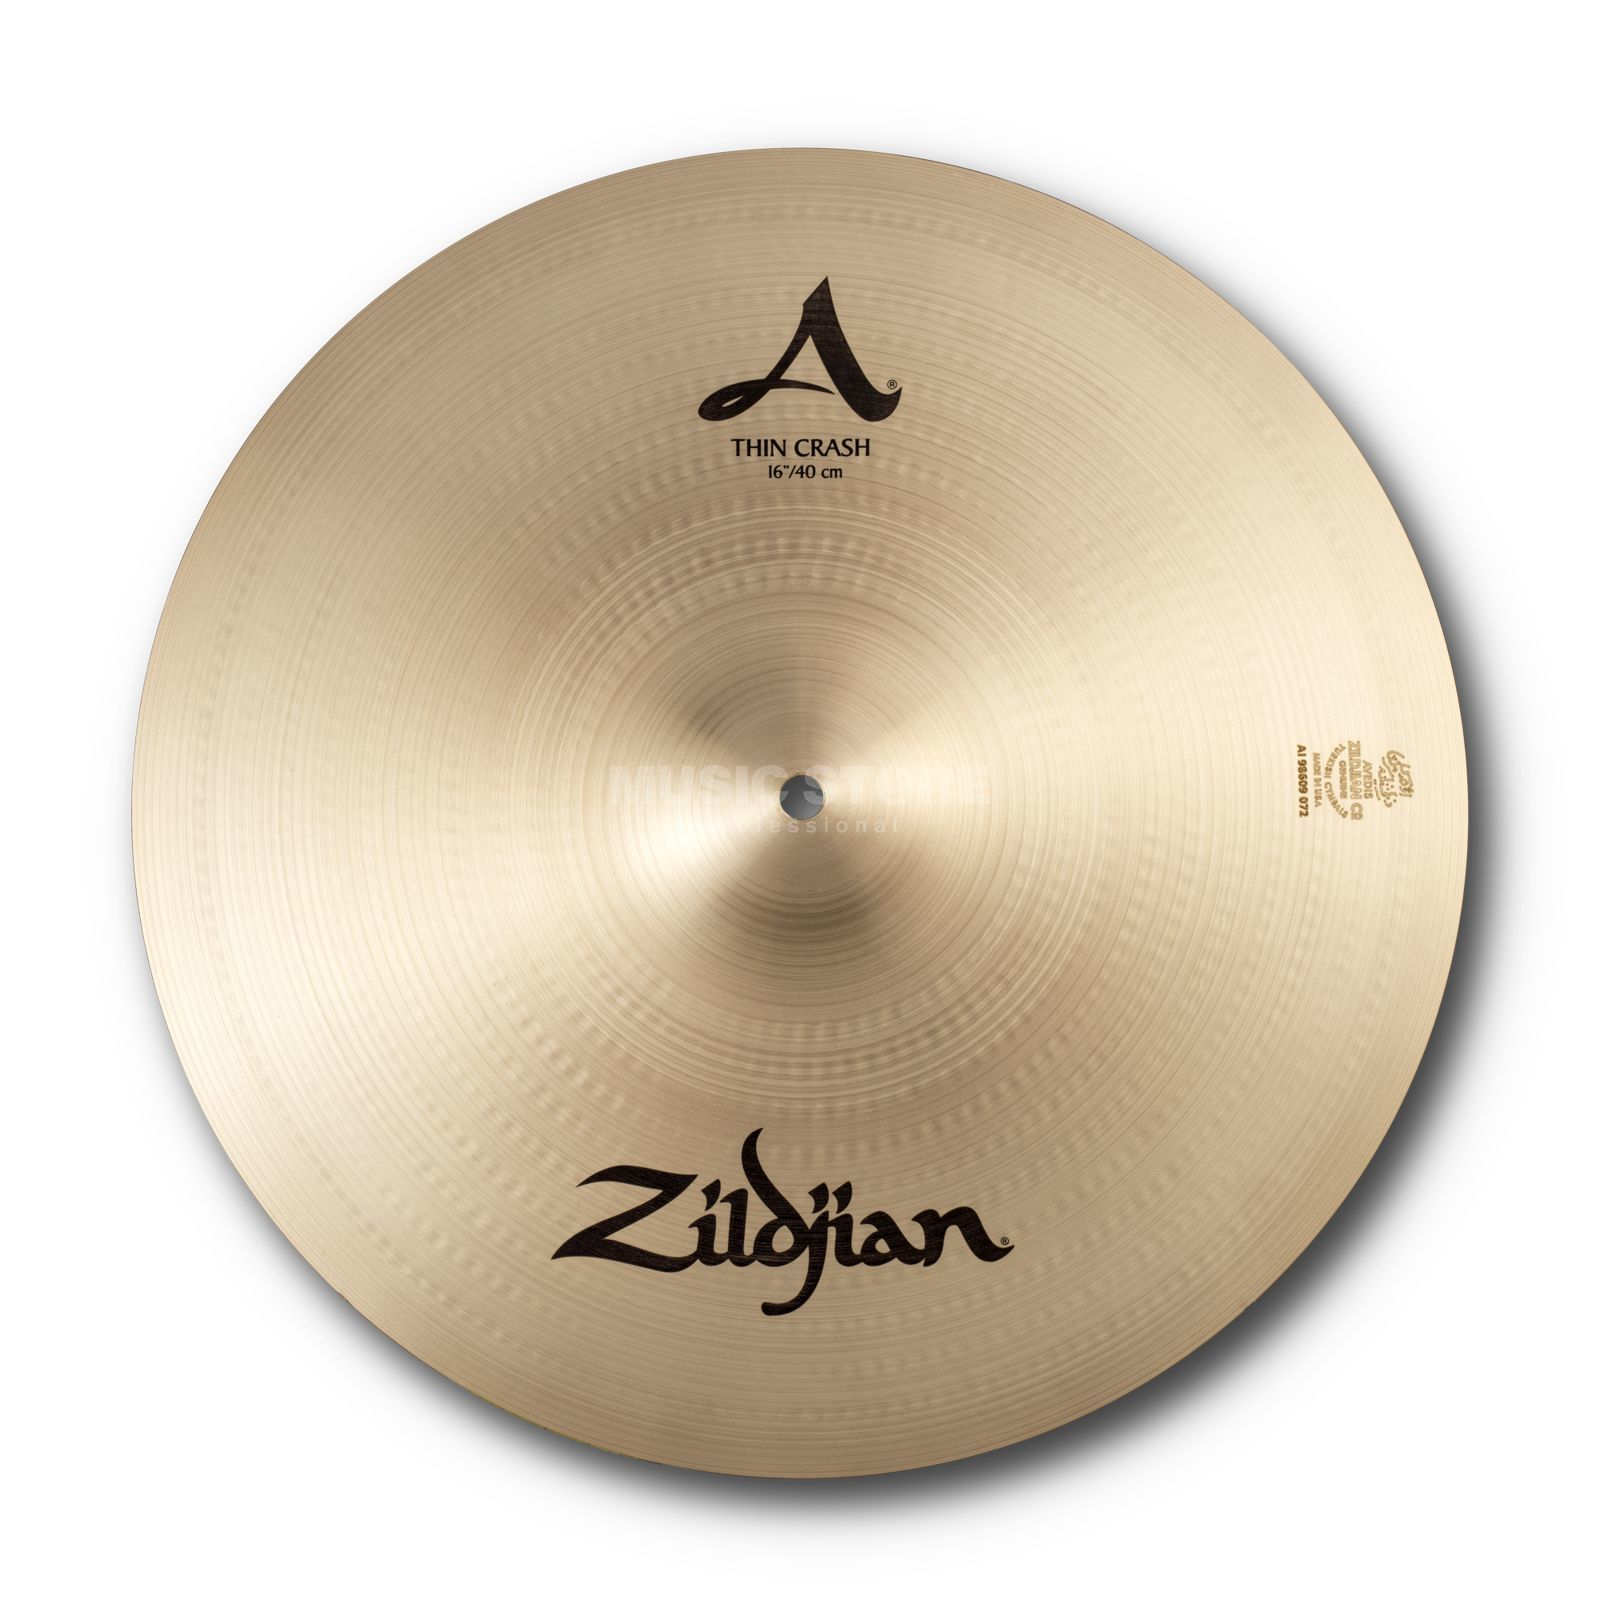 "Zildjian A' Zildjian Thin Crash 16"", Traditional Finish Immagine prodotto"